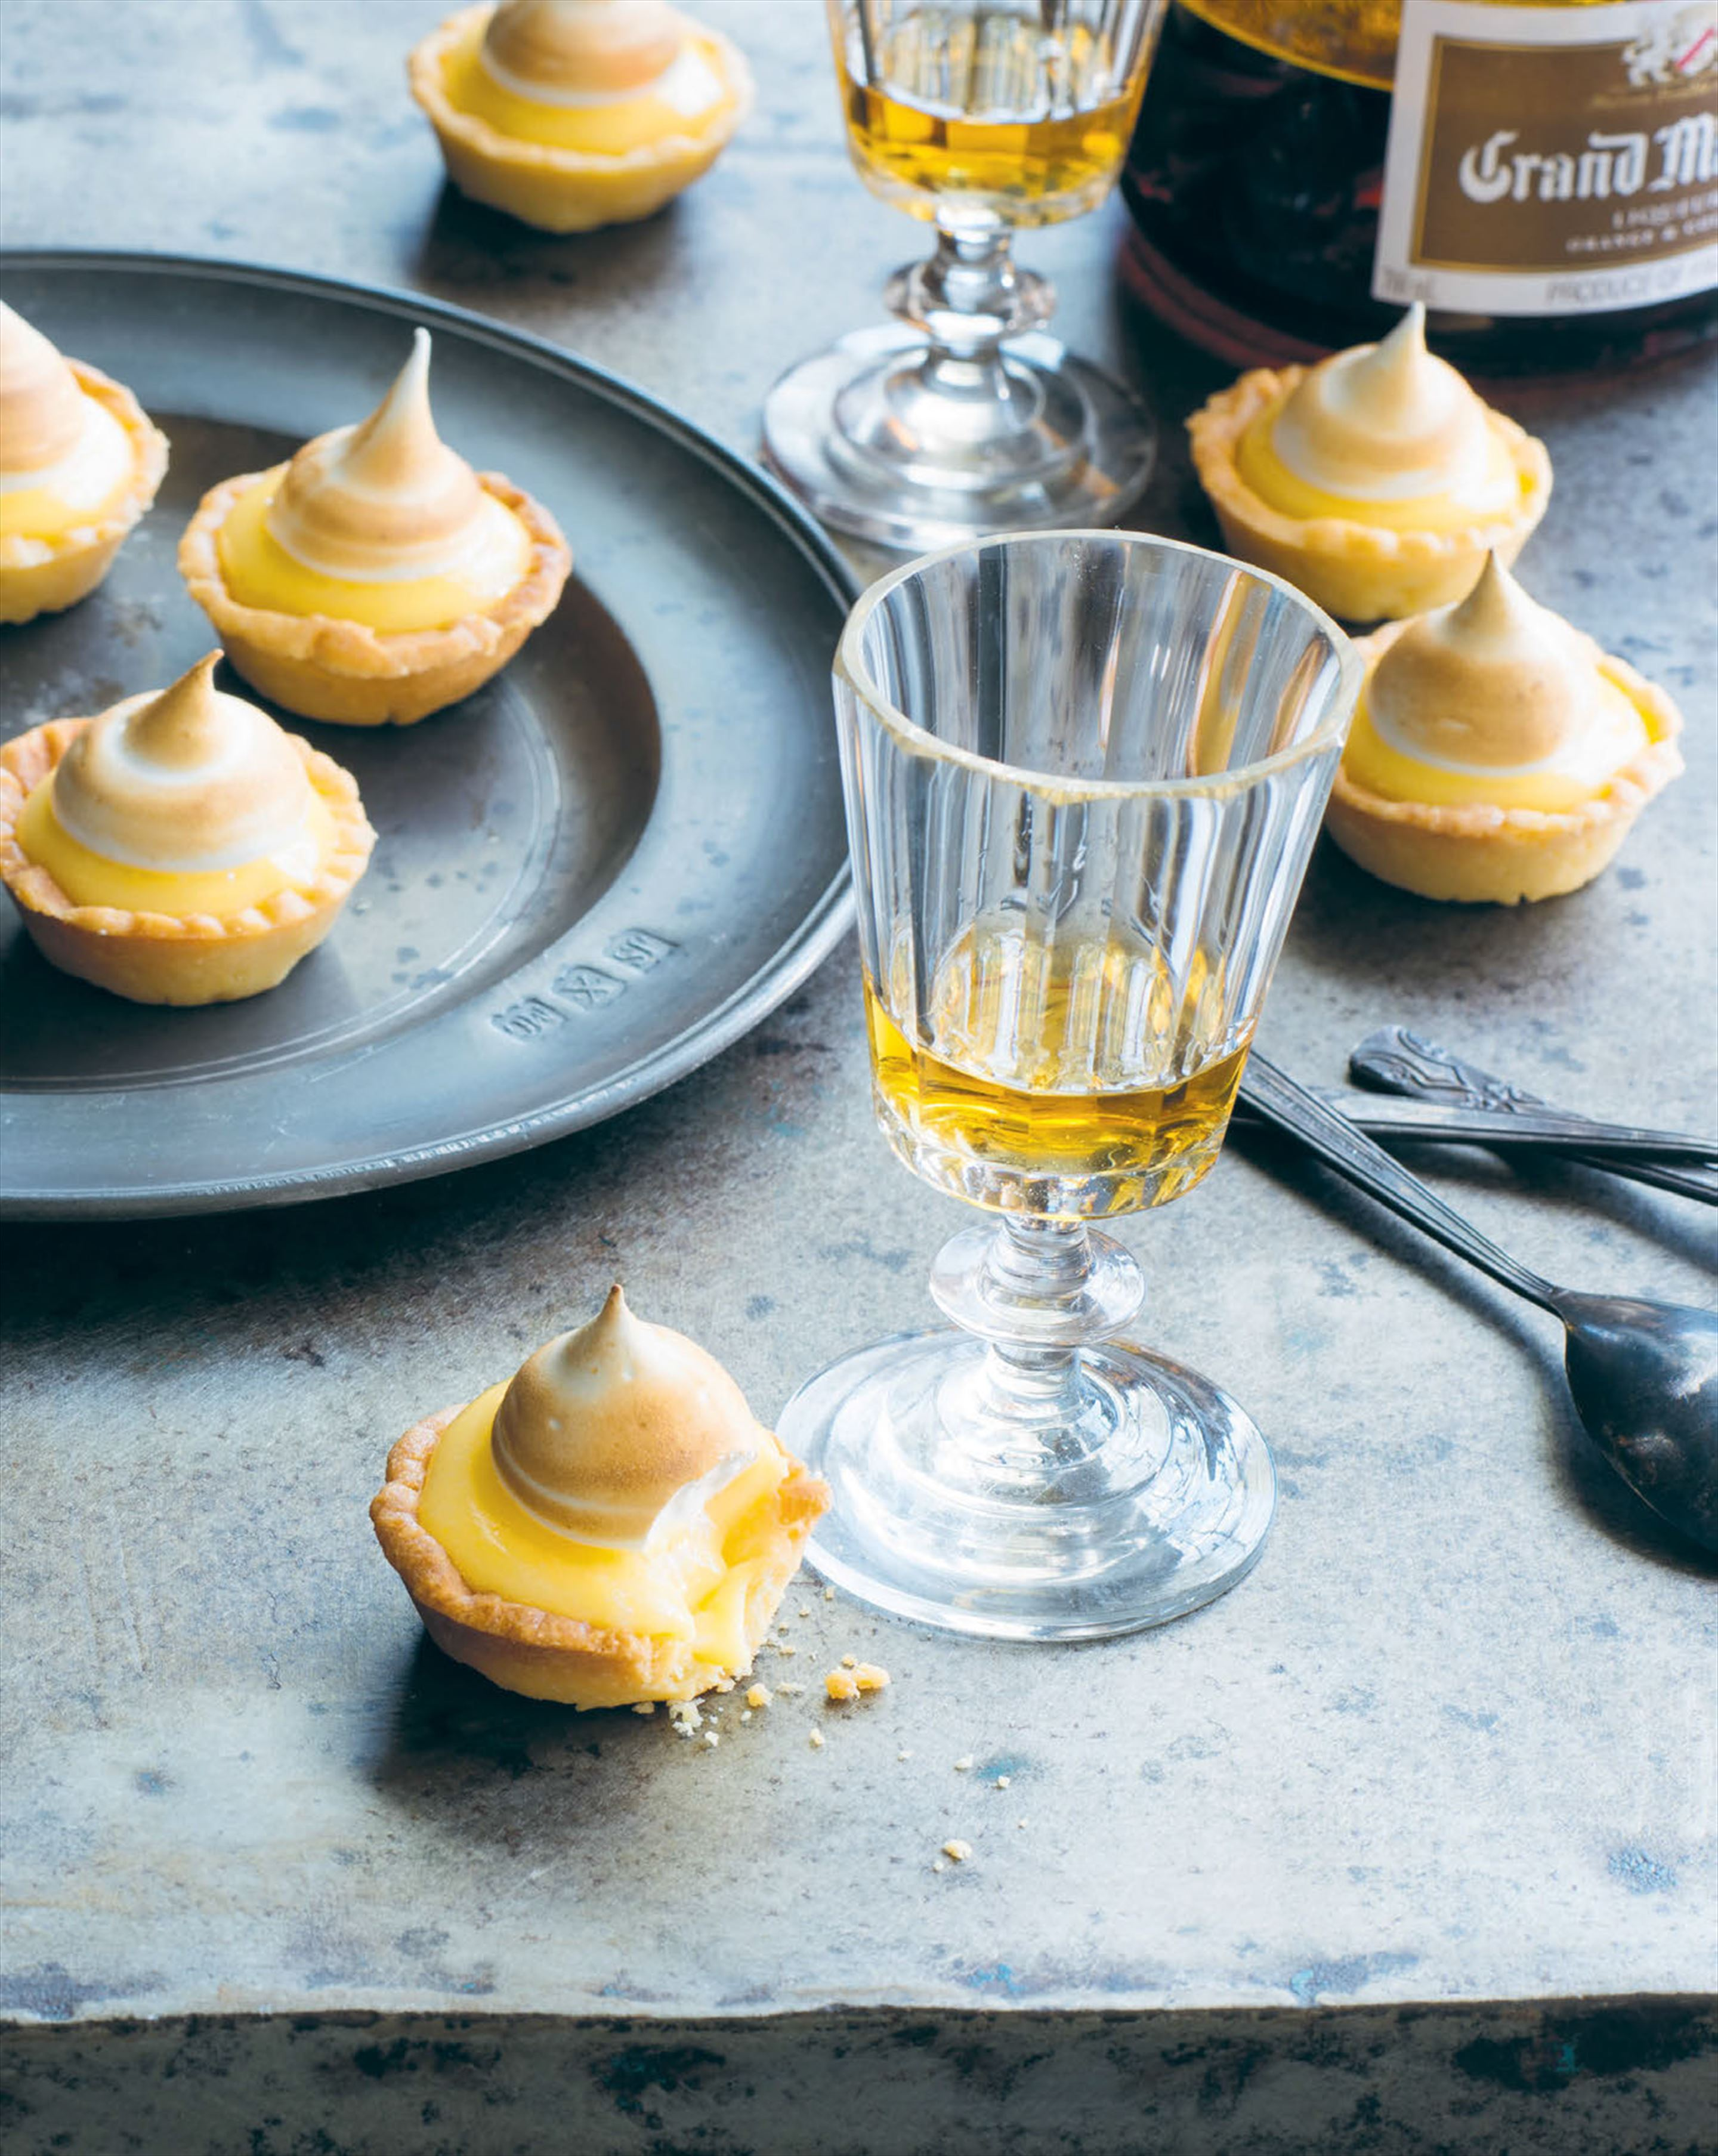 Petit lemon meringue tartlets